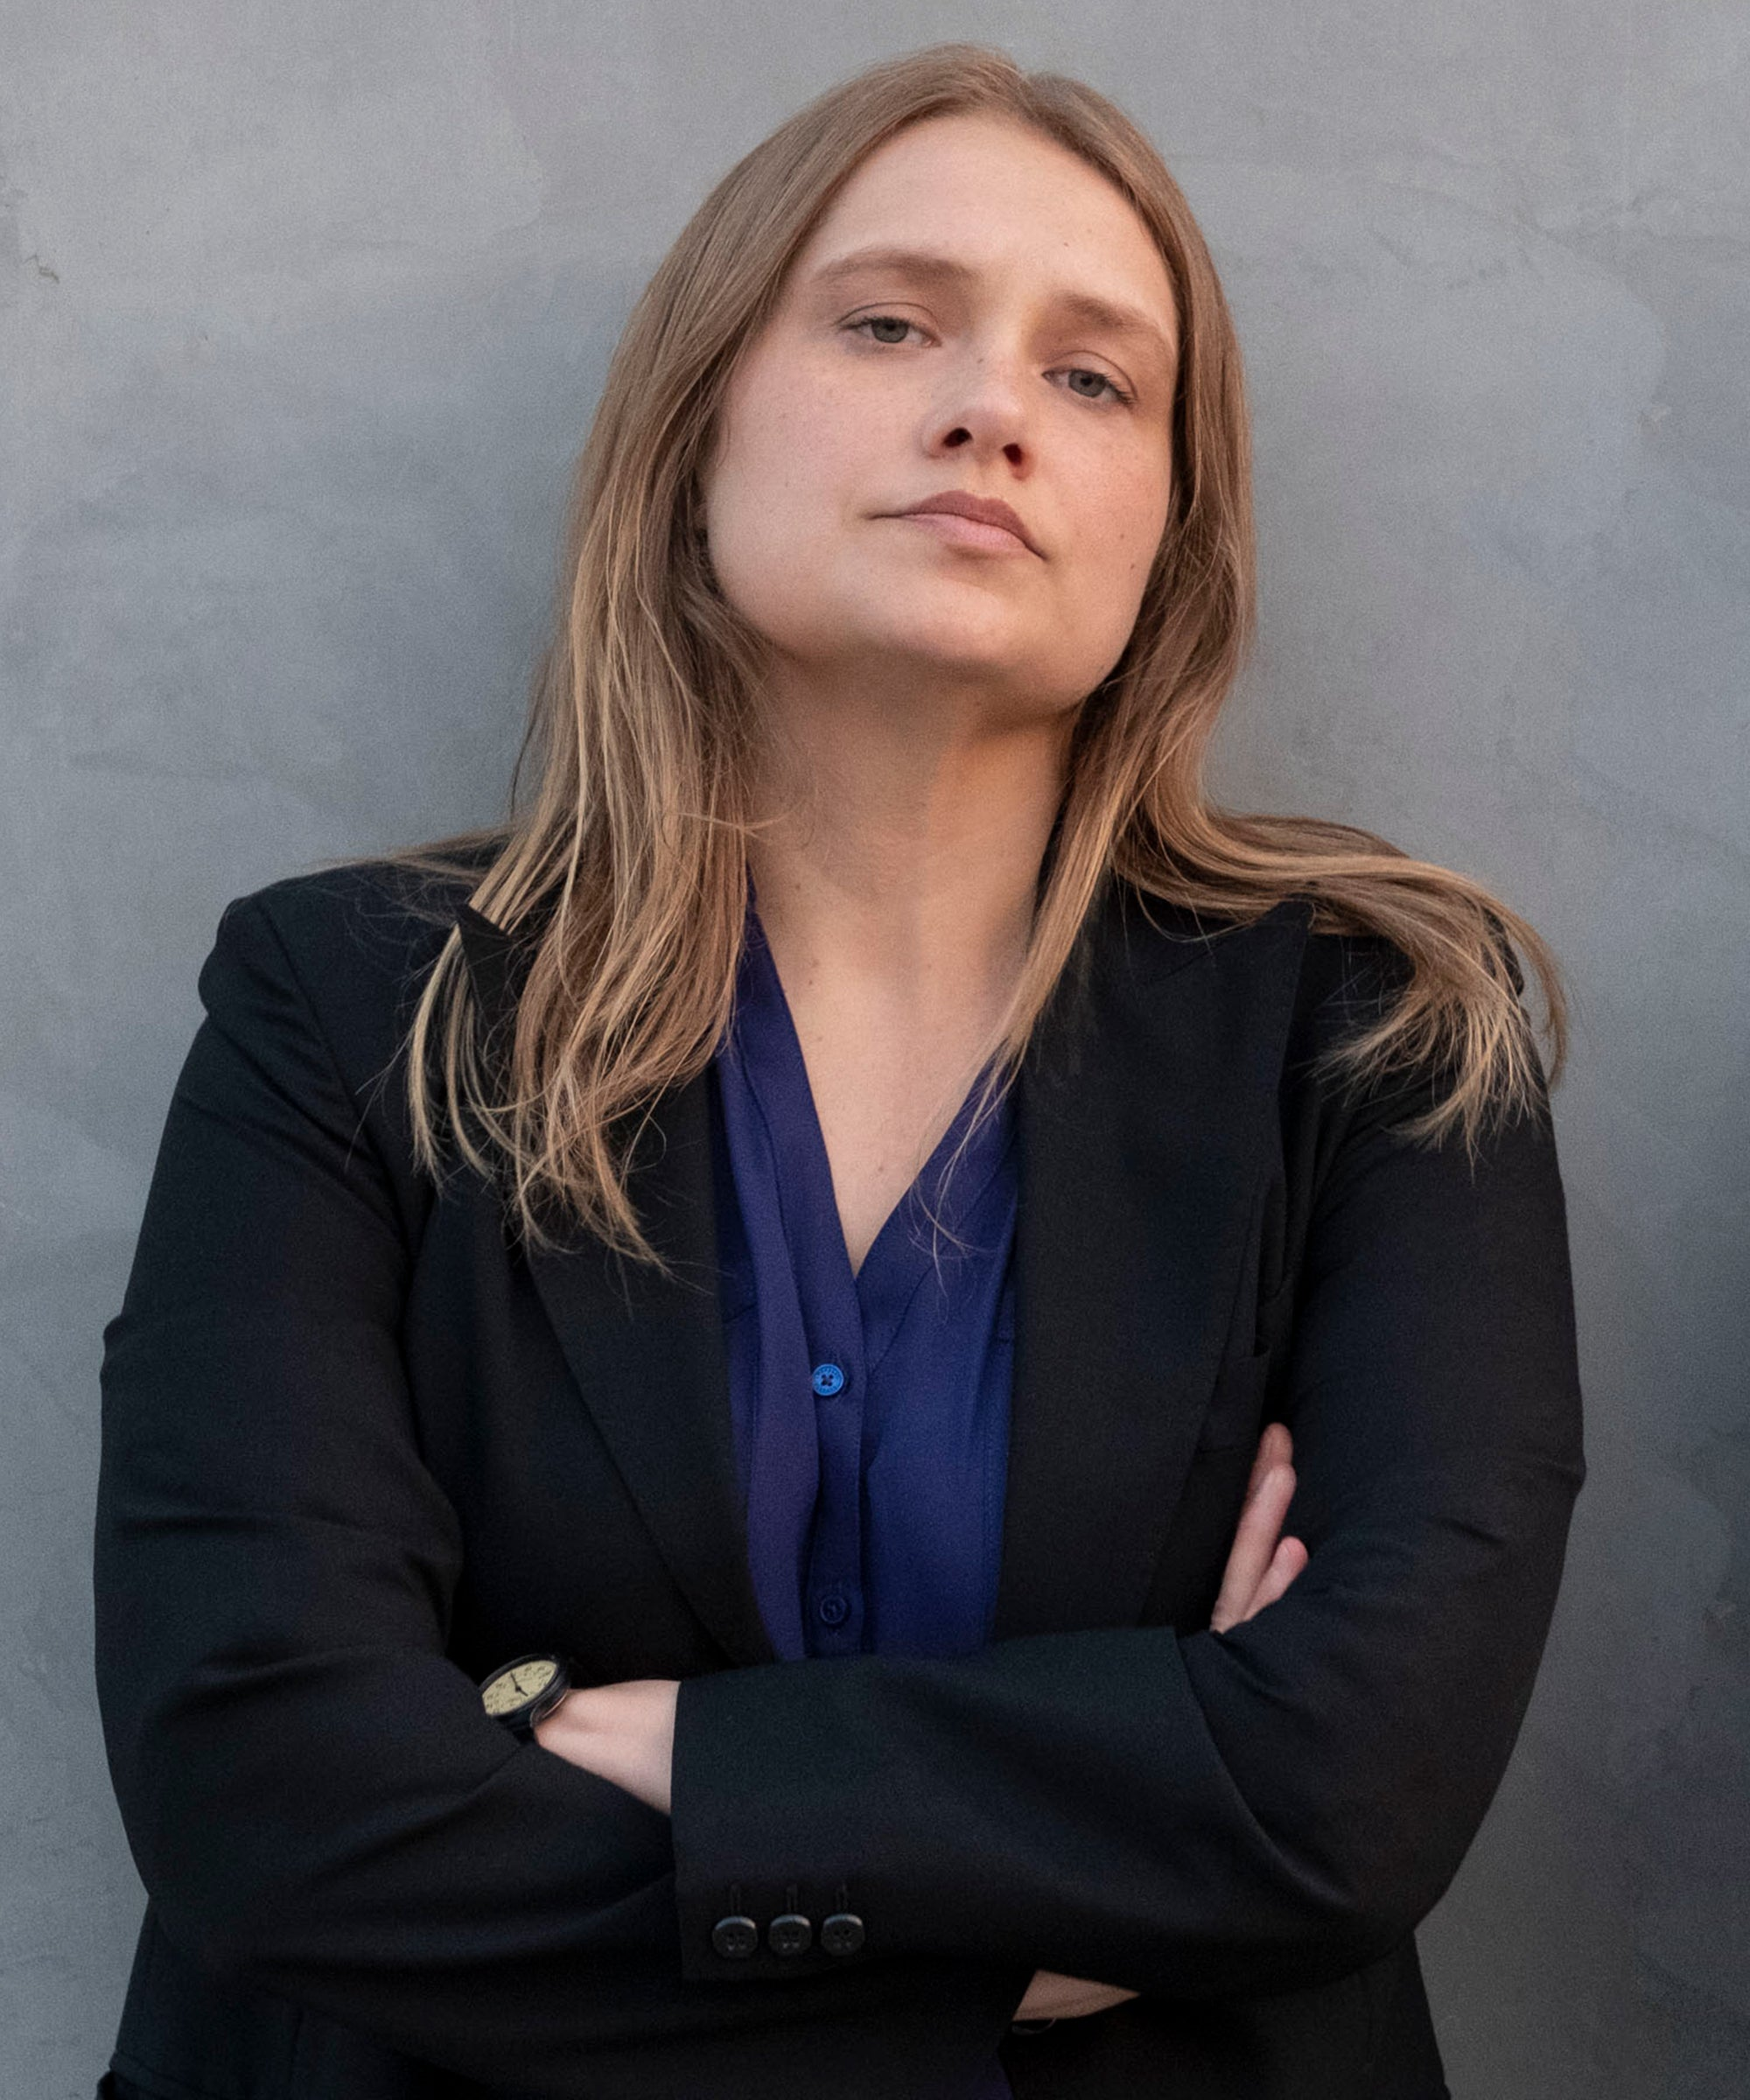 Karen Duvall From Netflix's Unbelievable Is Based On One Real, Very Determined Detective